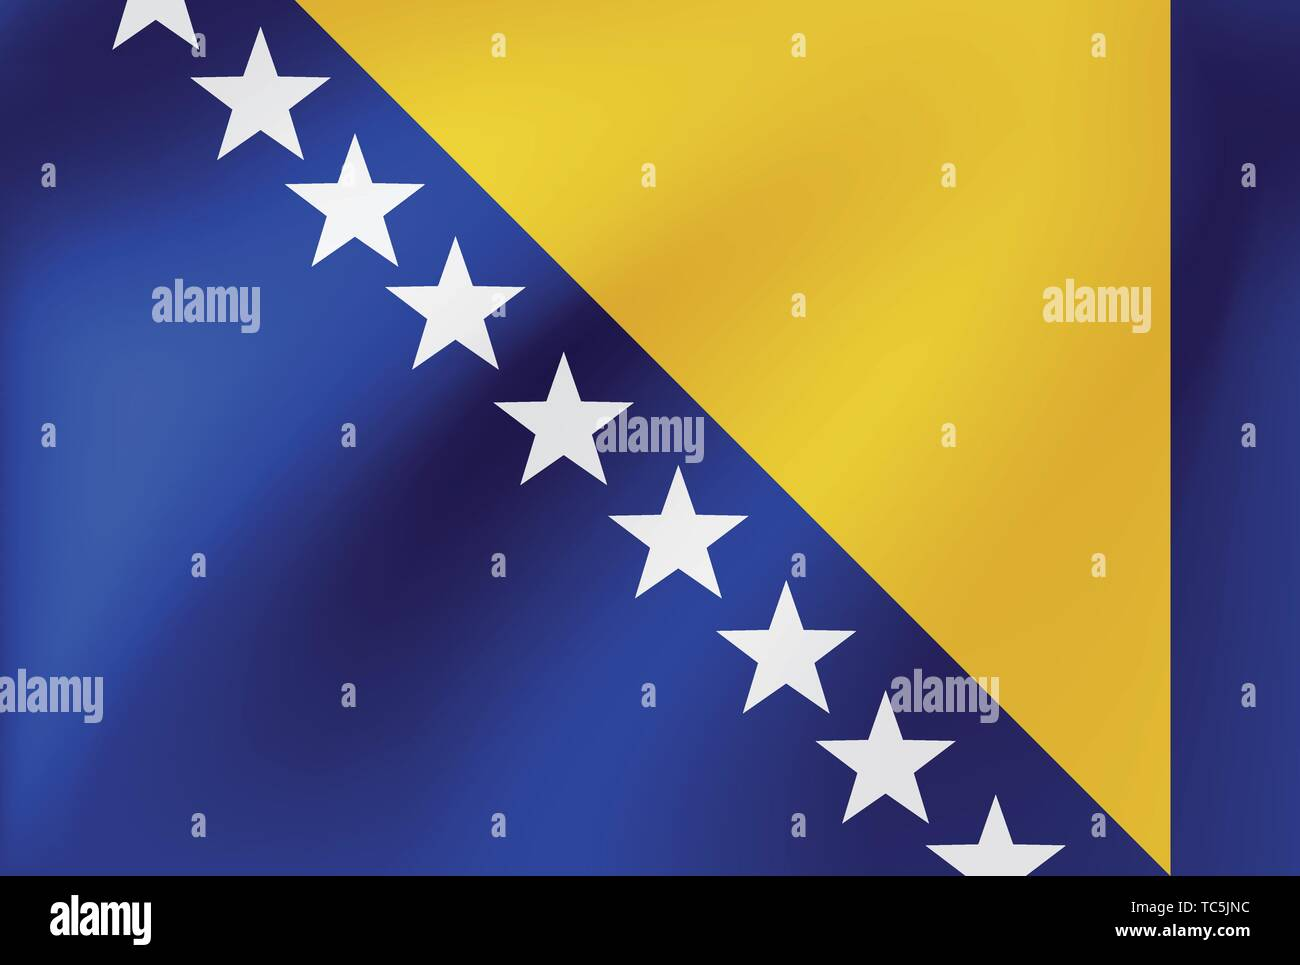 Vector national flag of Bosnia and Herzegovina. Illustration for sports competition, traditional or state events. - Stock Vector